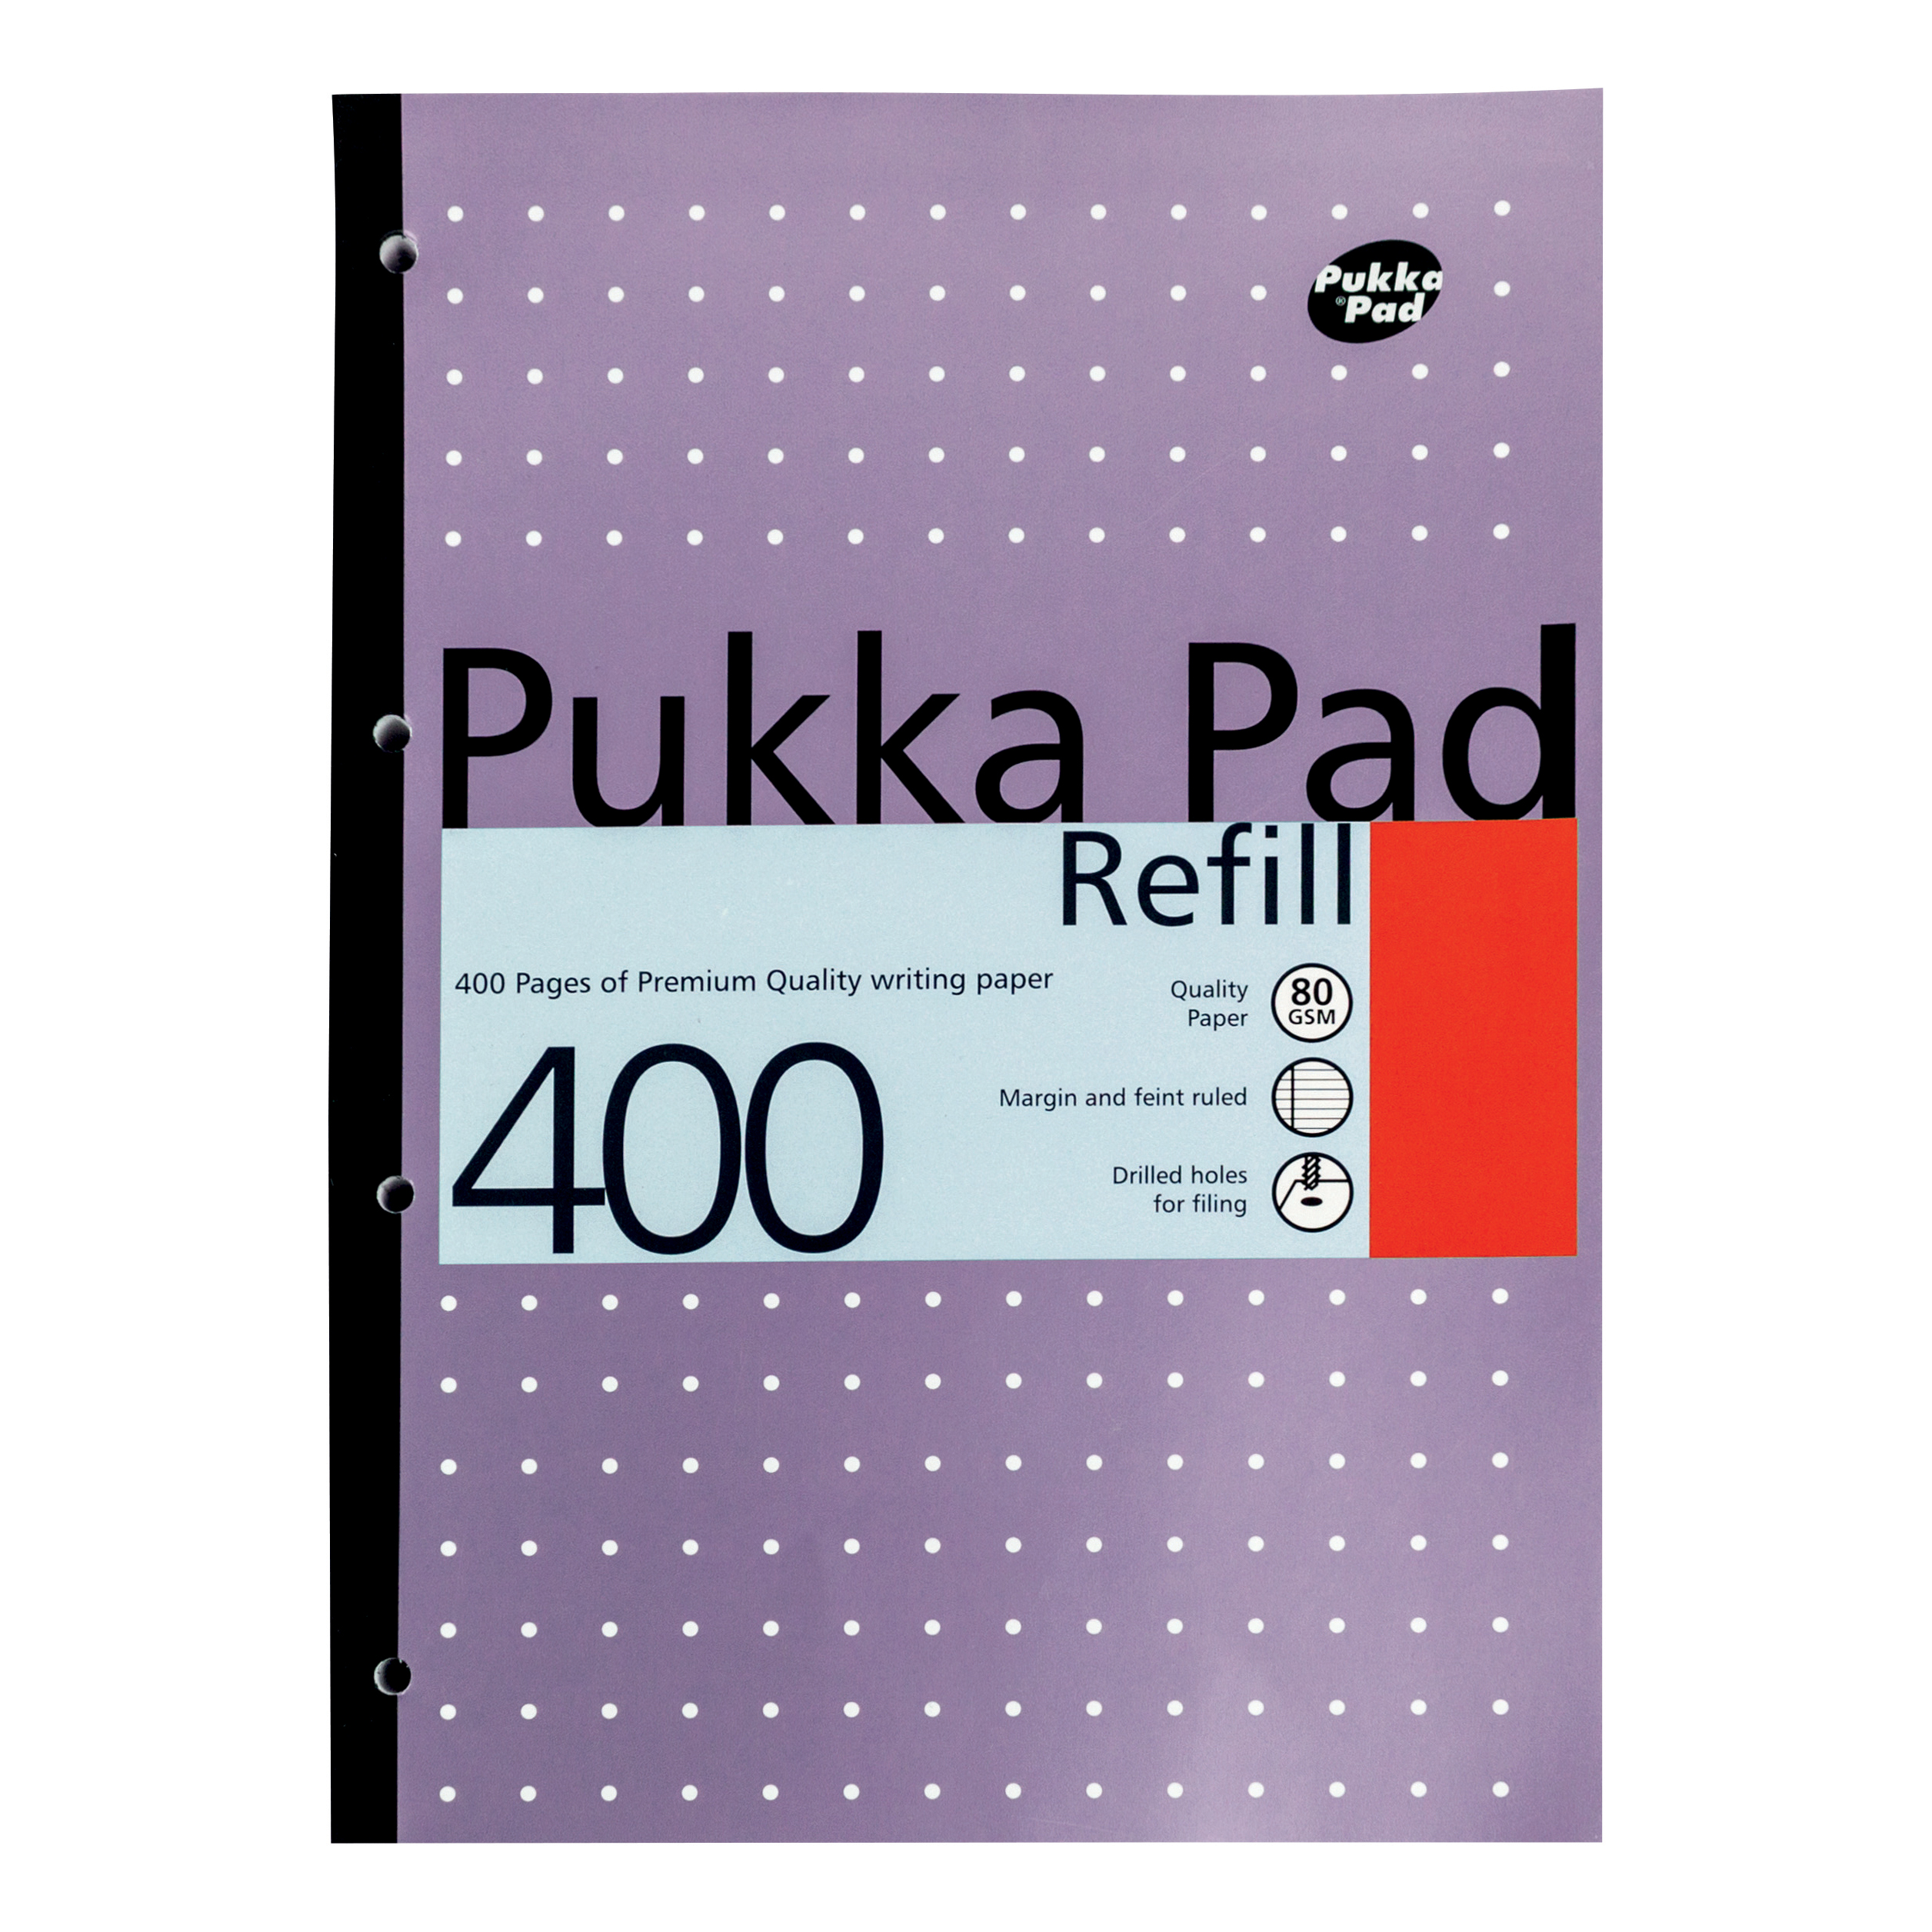 Pukka Pad Refill Pad Sidebound 80gsm Ruled Margin Punched 4 Holes 400pp A4 Assorted Ref REF400 [Pack 5]